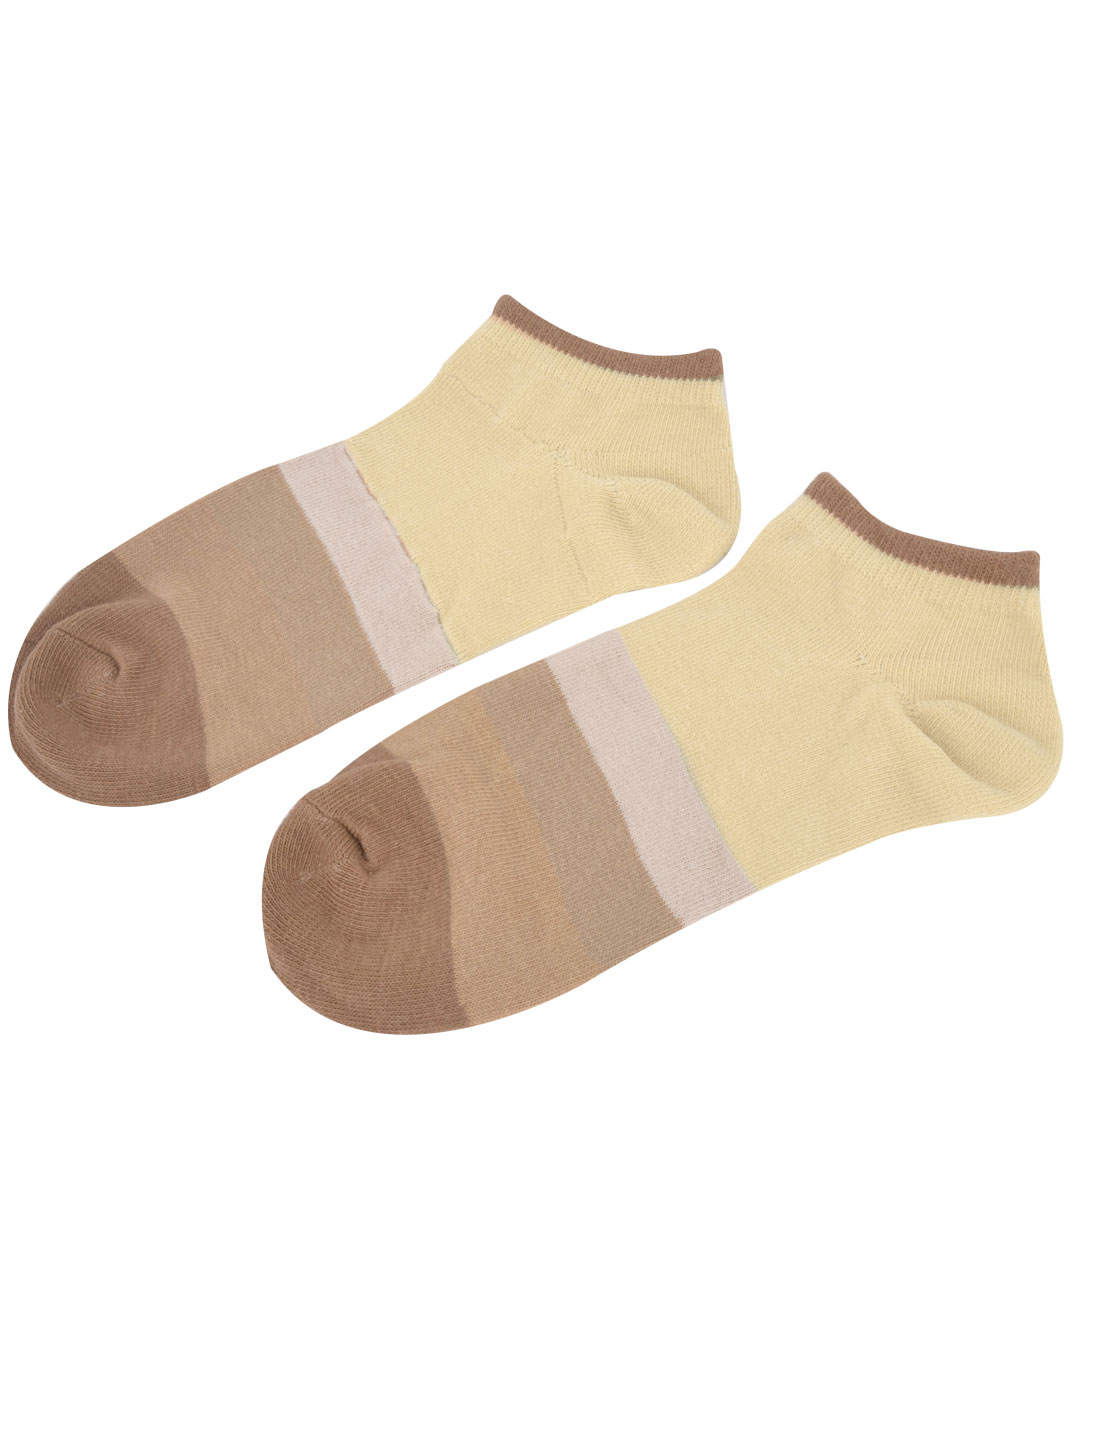 Unisex Elastic Cuff Low Cut Ankle Colorful Stripes Short Socks Beige Brown Pair